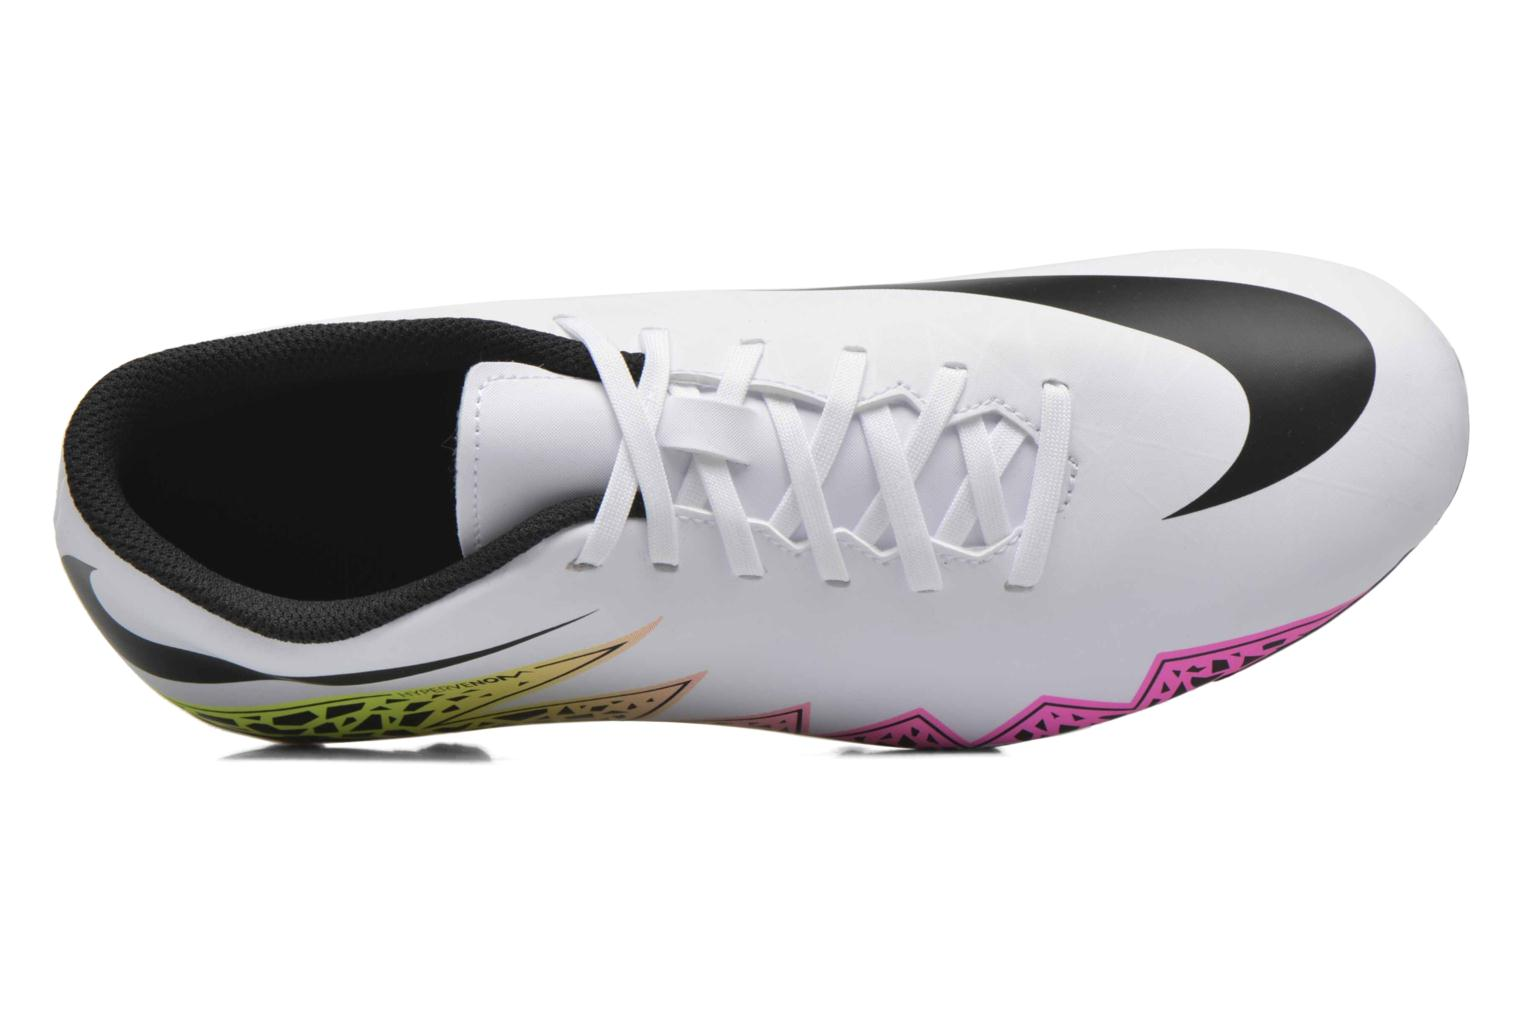 Hypervenom Phade II Fg White/Black-Total Orange-Volt